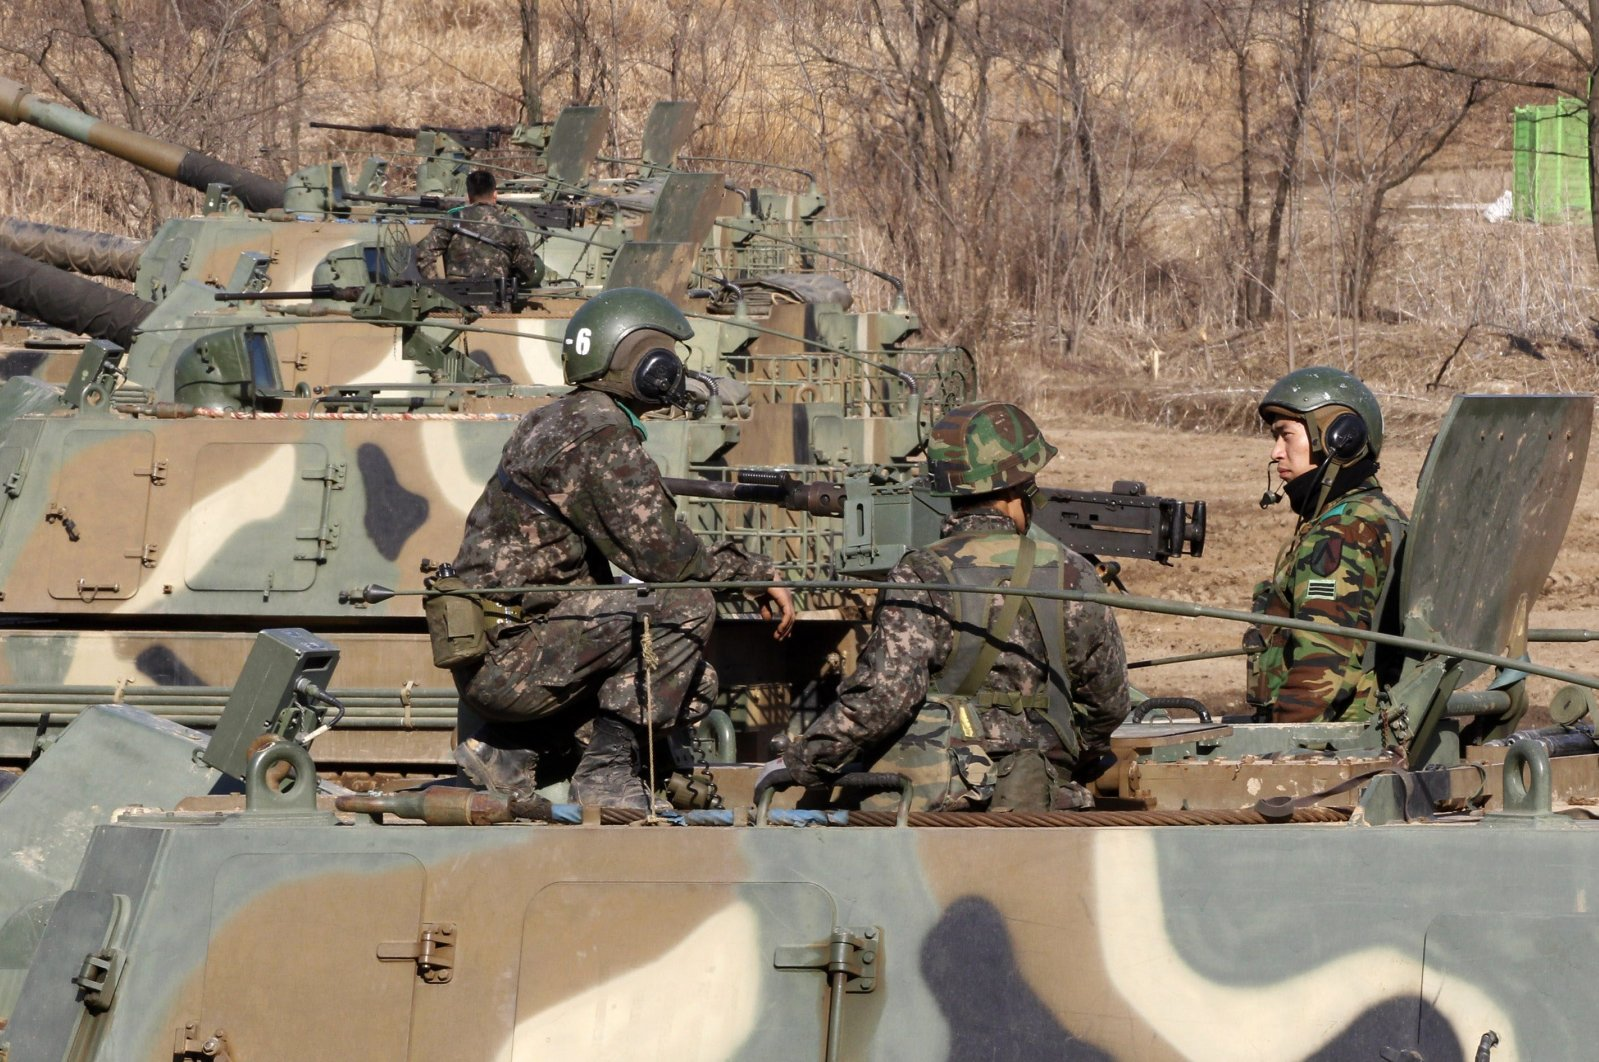 South Korean Army soldiers sit on their K-9 self-propelled artillery vehicle during an exercise against possible attacks by North Korea near the border village of Panmunjom in Paju, South Korea, March 11, 2013. (AP Photo)